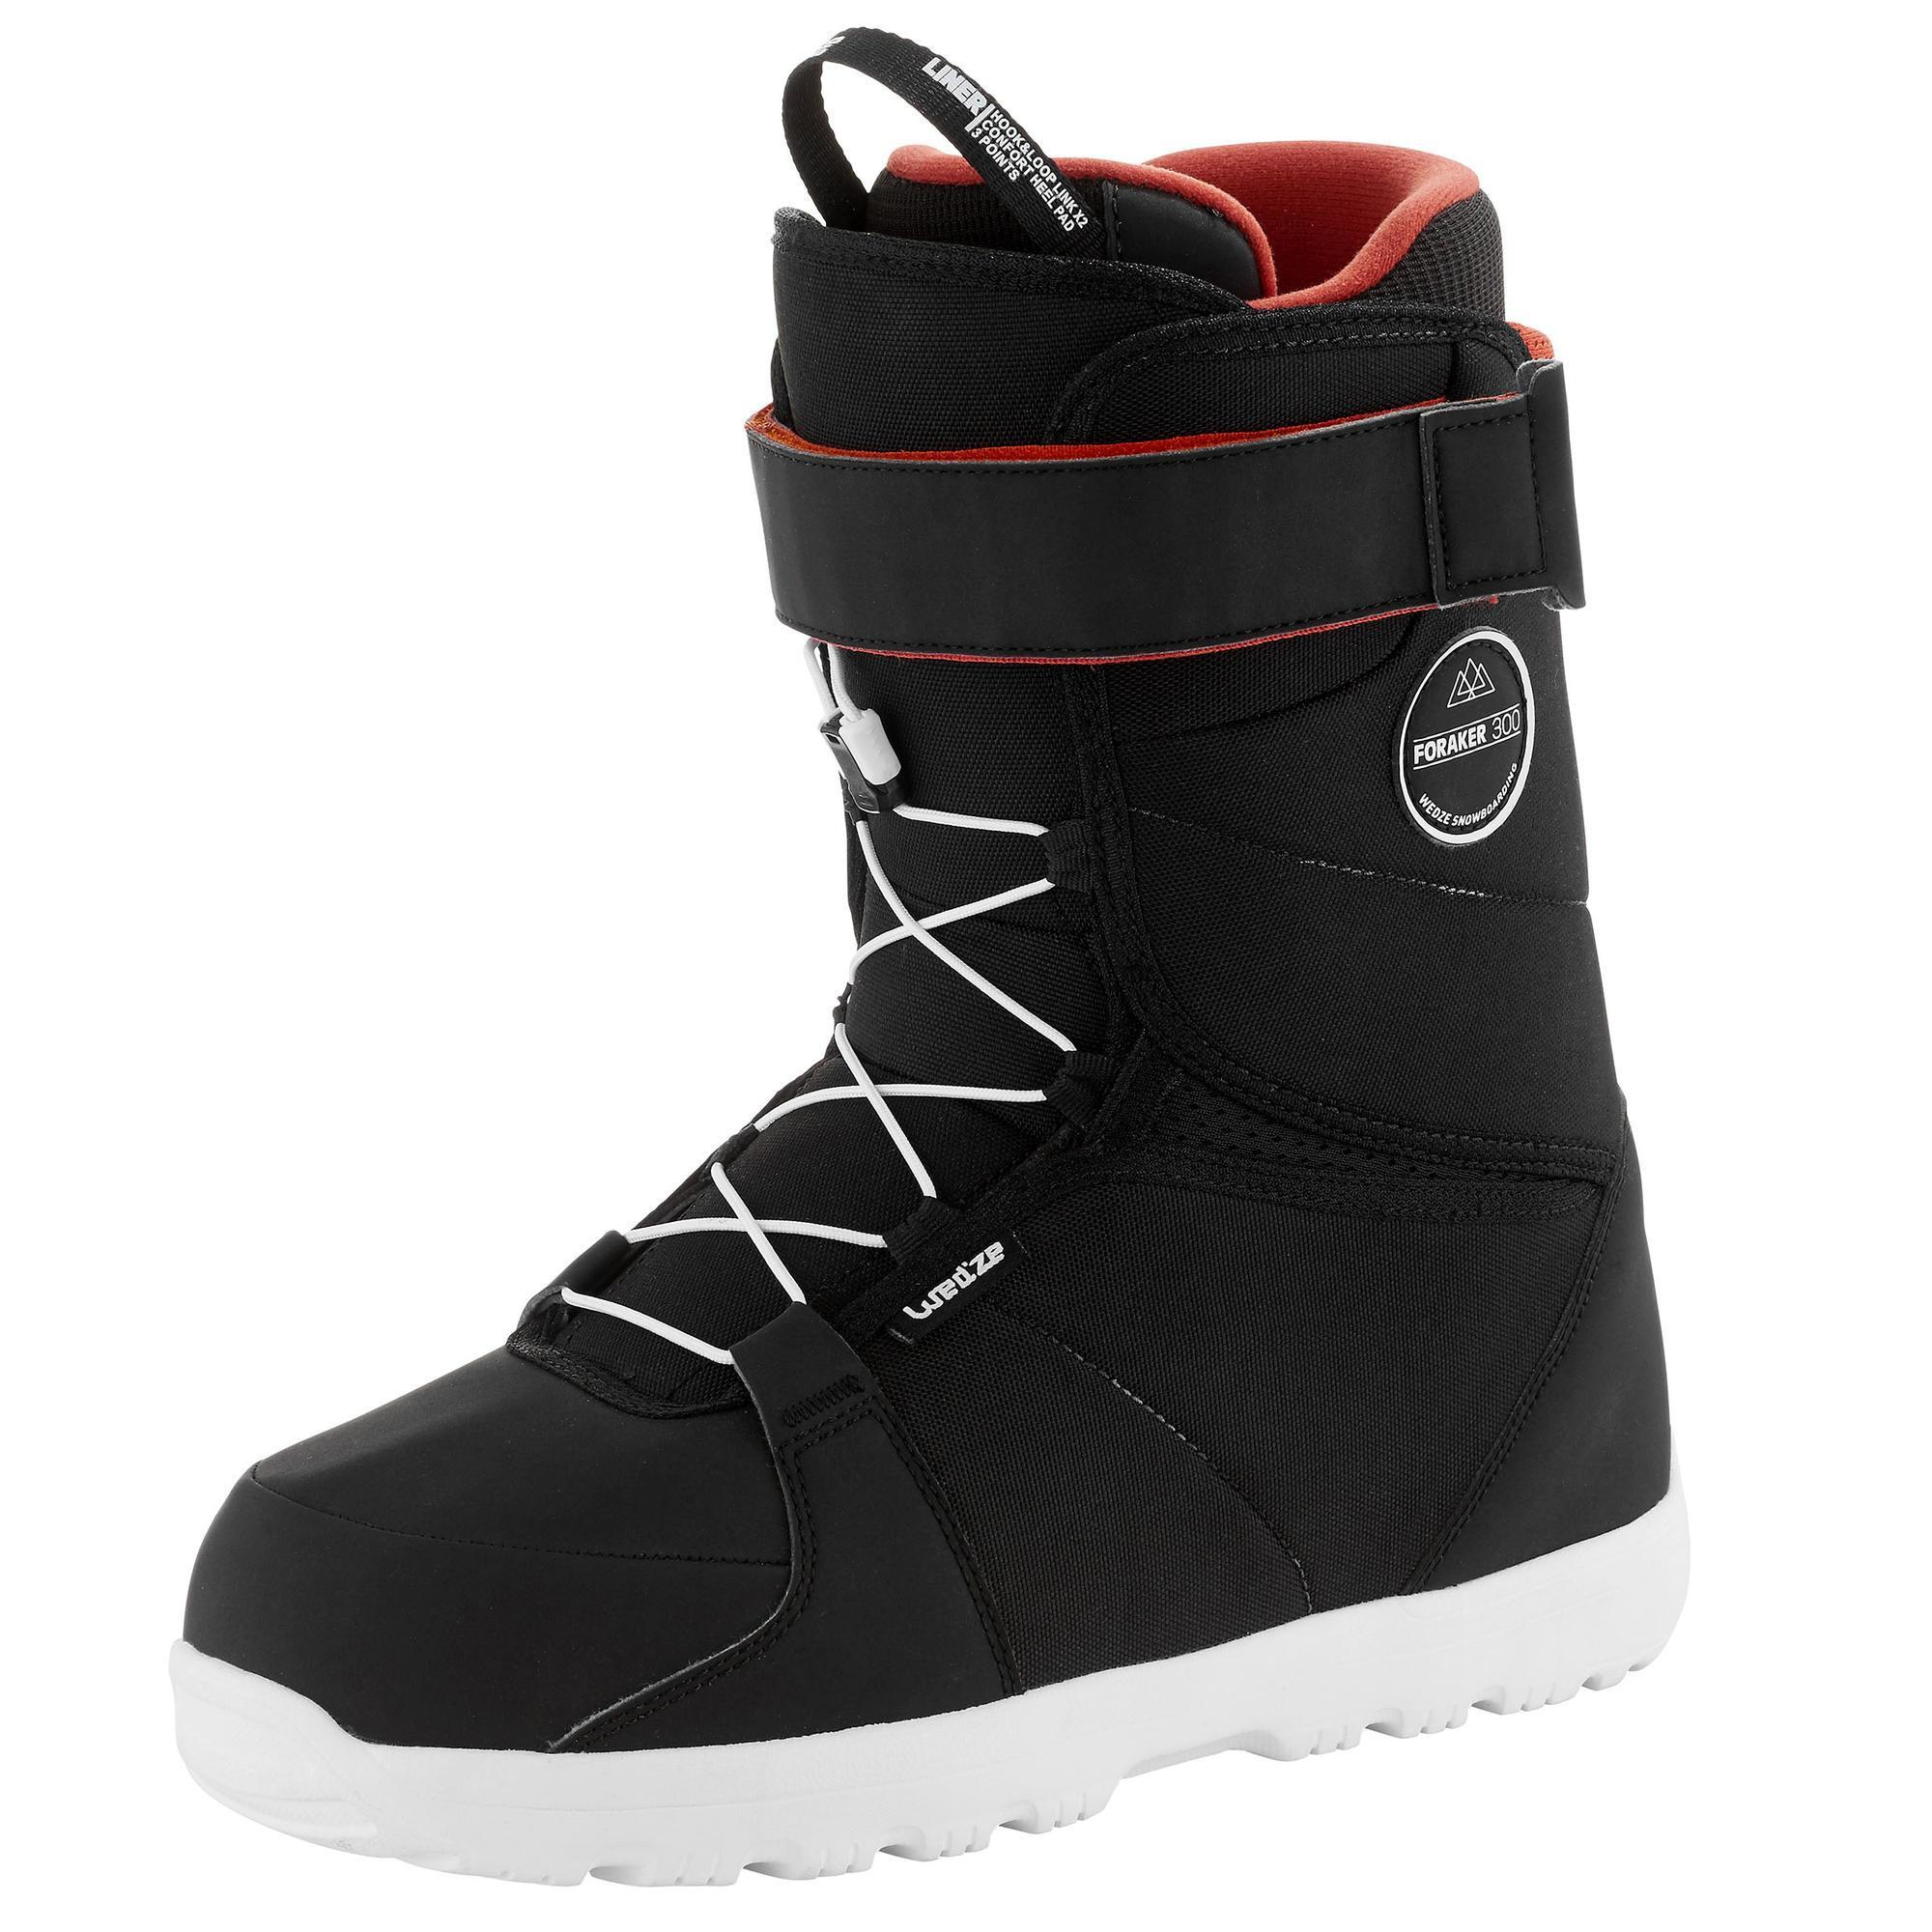 Wed'ze All mountain snowboardboots voor heren Foraker 300 - Fast Lock 2Z zwart thumbnail